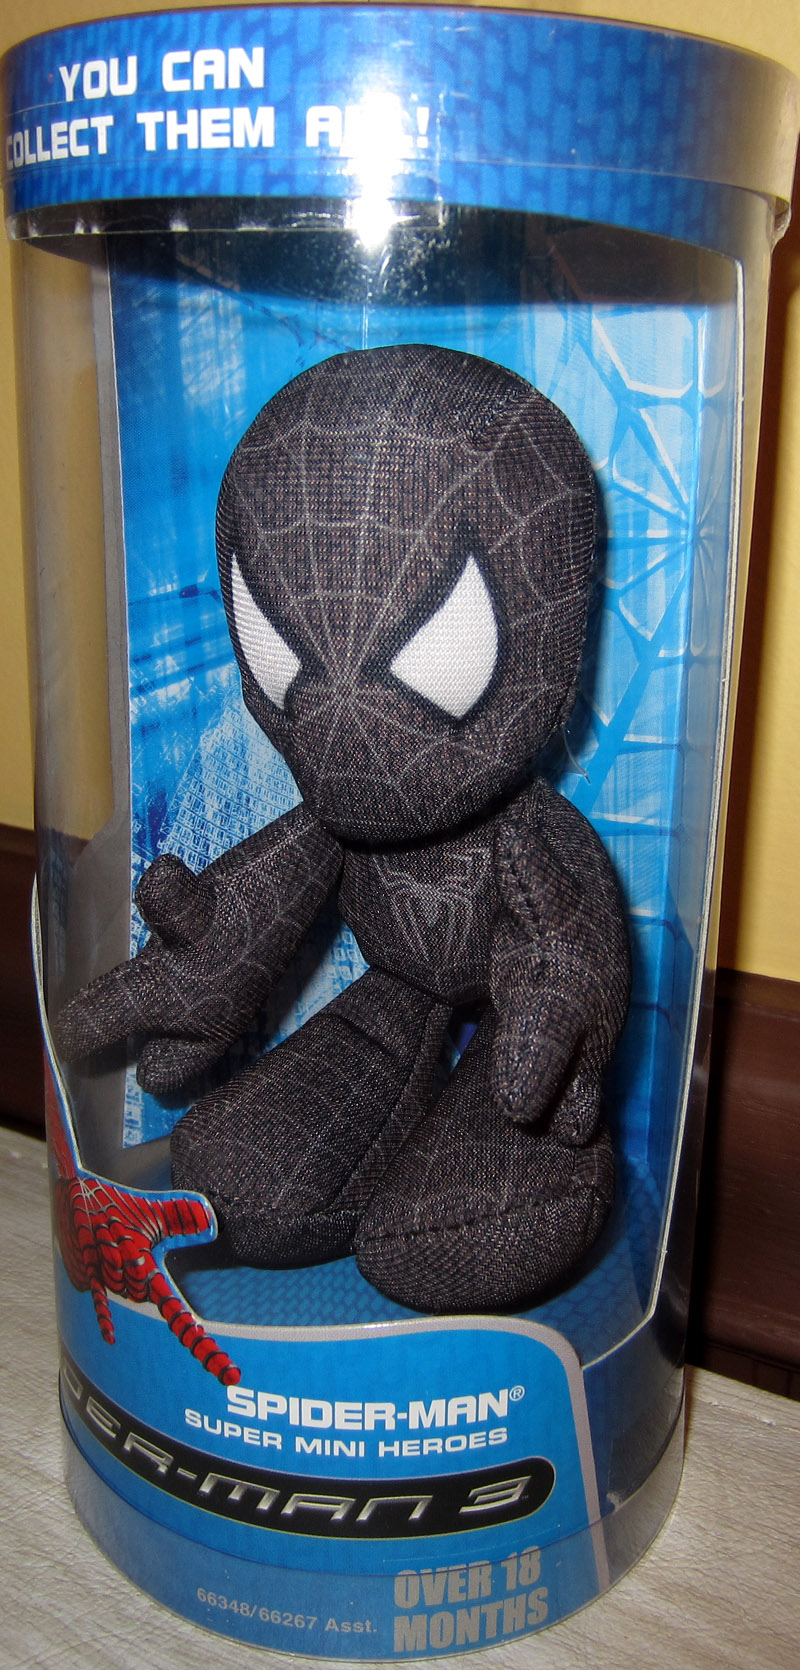 Black Costume Spider-Man 3 Super Mini Heroes Plush